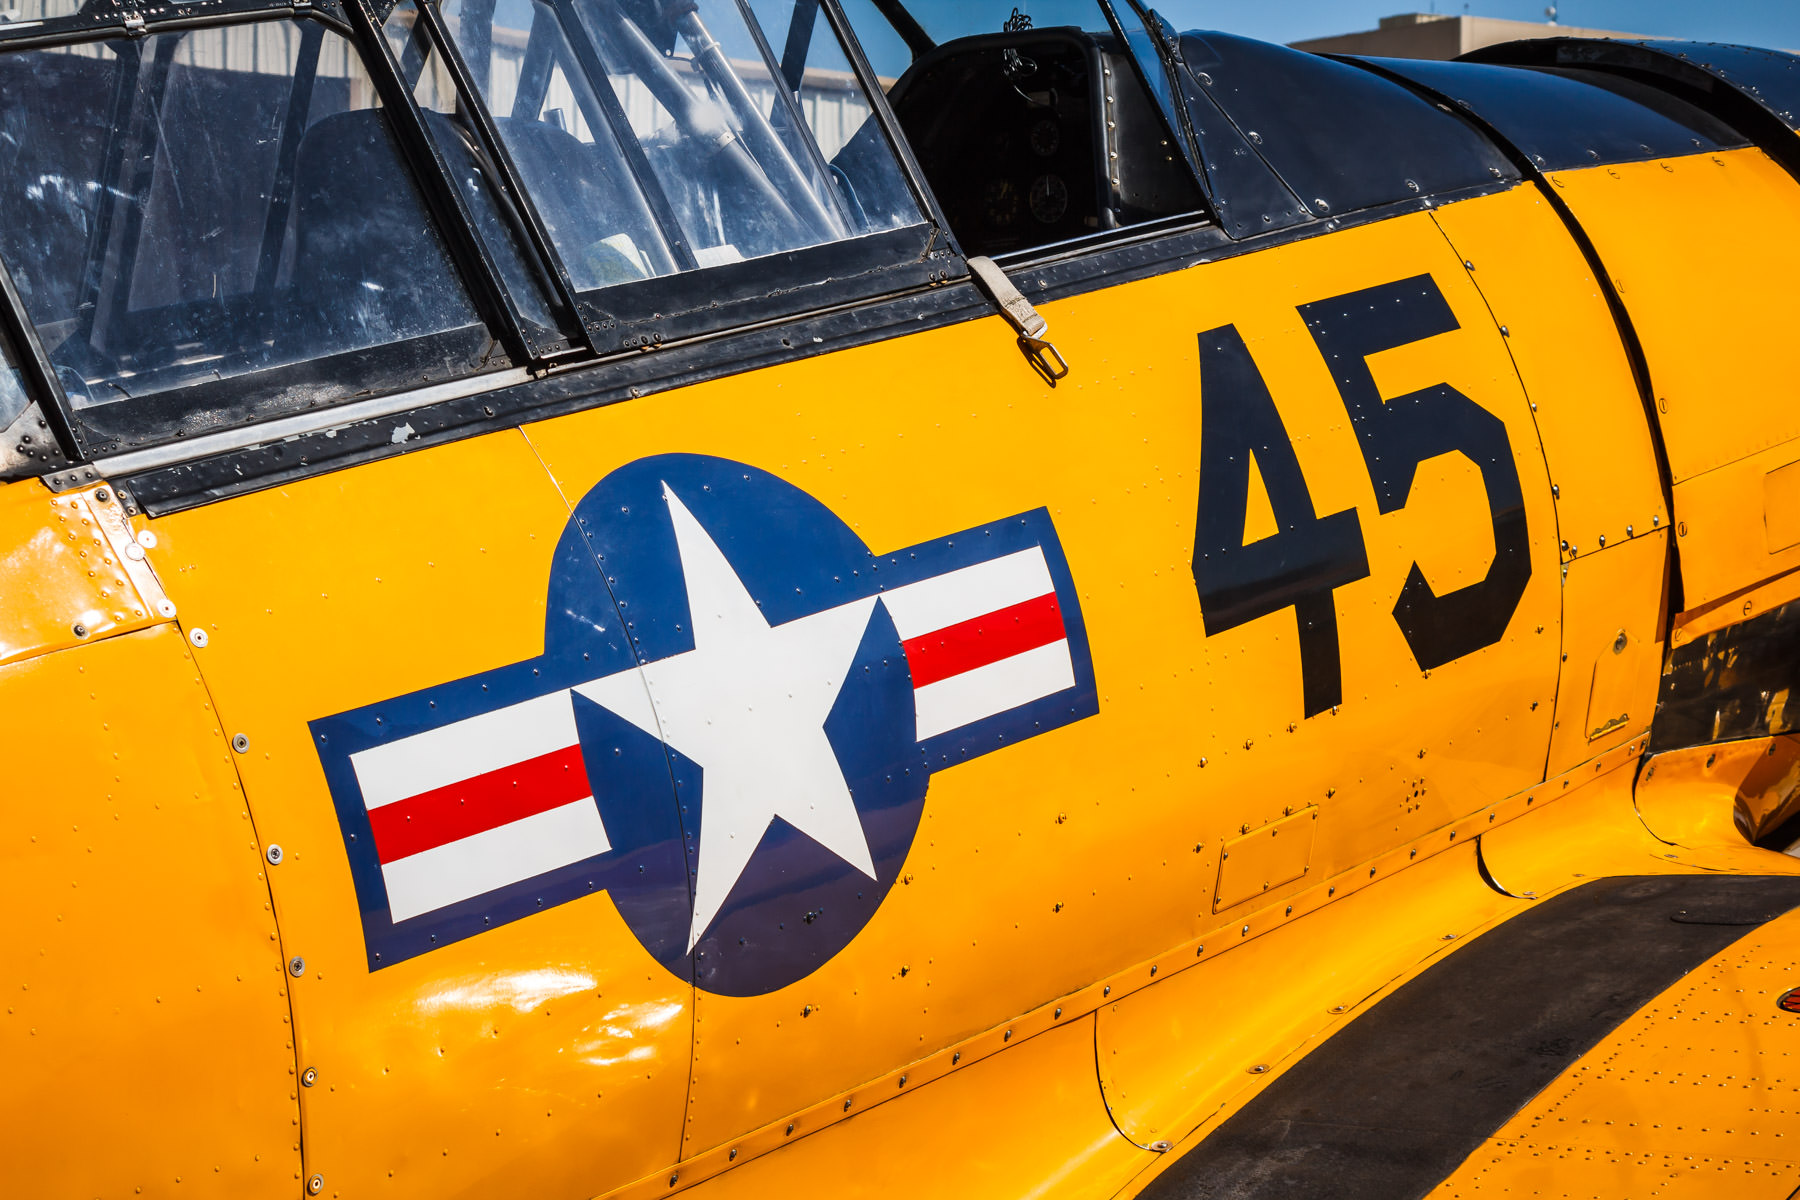 Detail of a vintage T-6 Texan at the Cavanaugh Flight Museum, Addison, Texas.